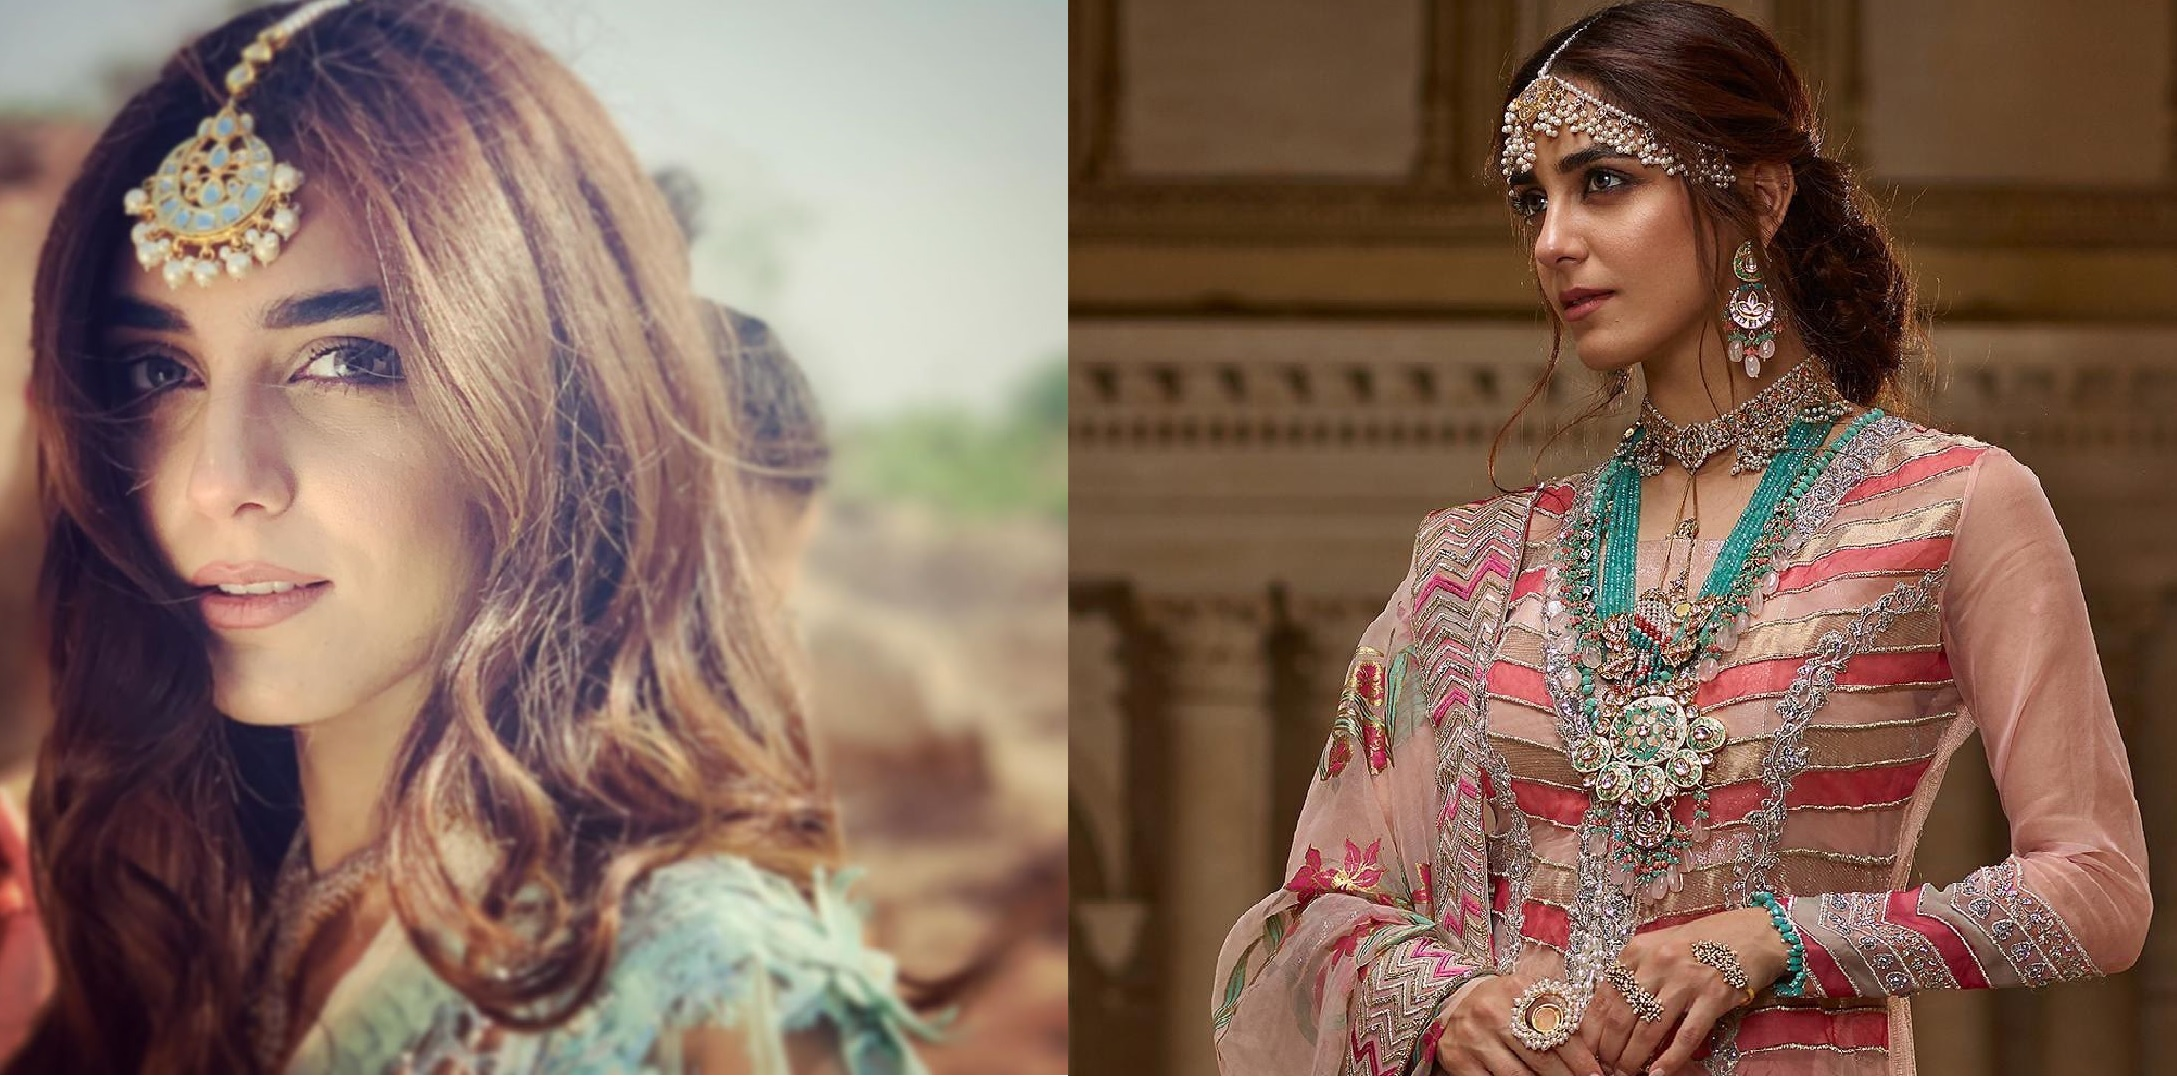 Maya Ali Famous Pakistani Actress Latest Shoot In Bridal Dresses (1)